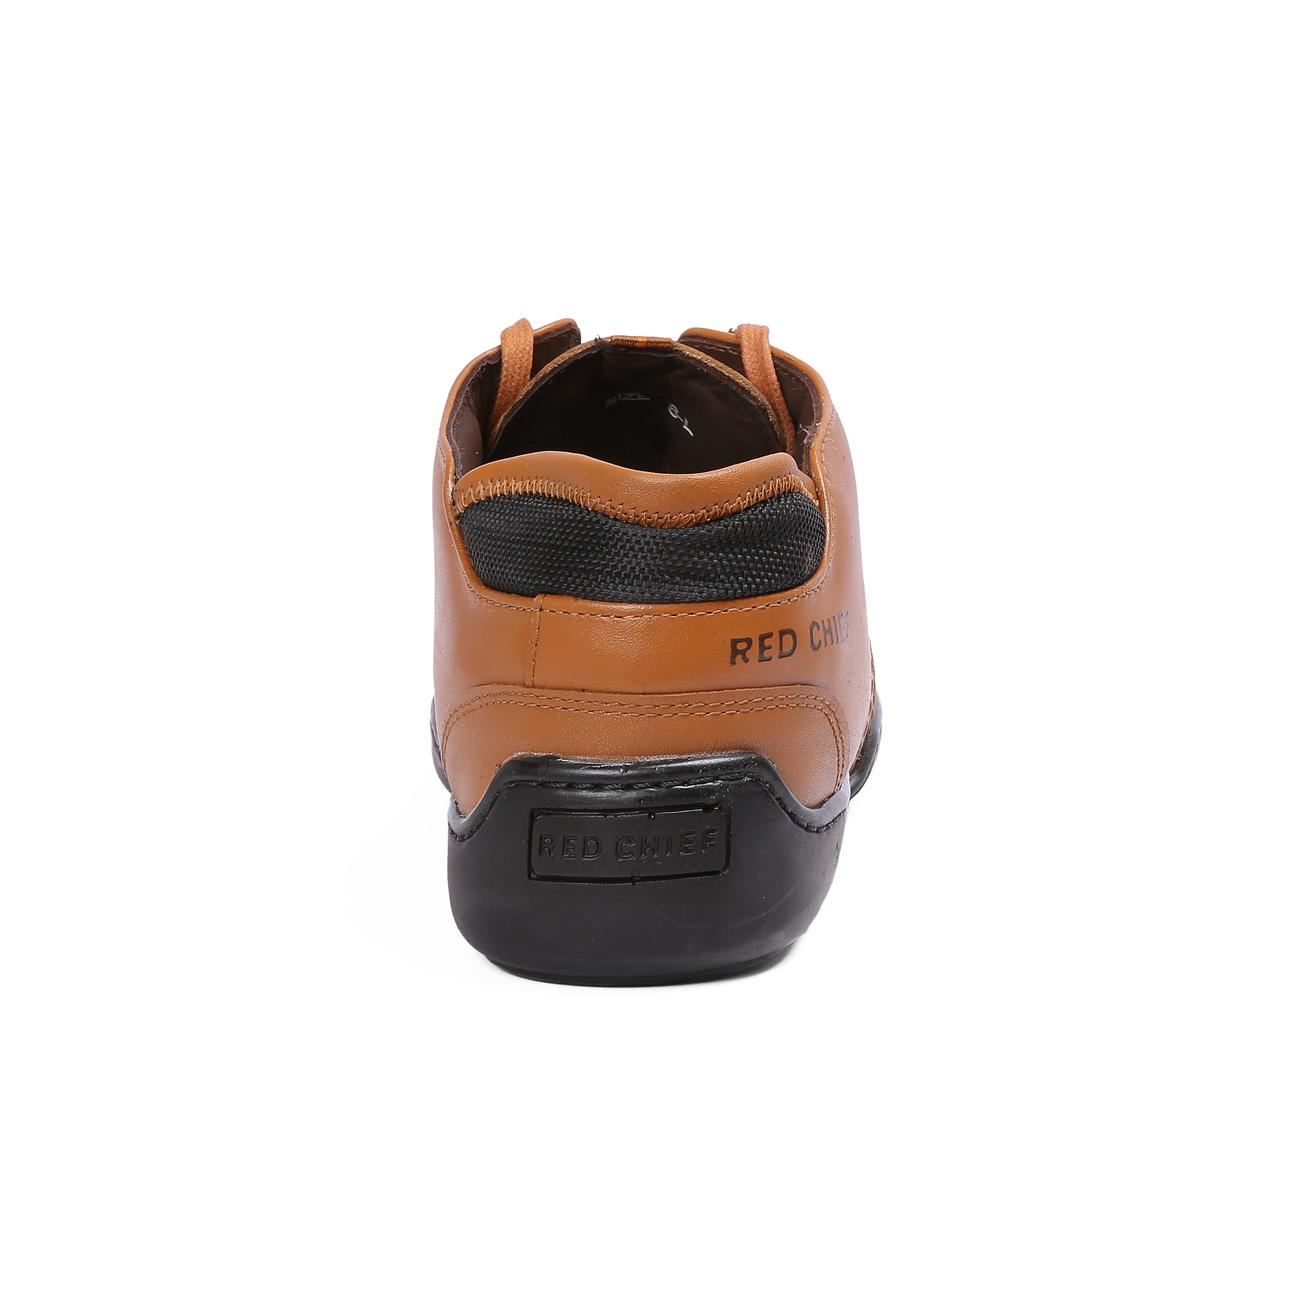 n tan casual leather shoes side view_2